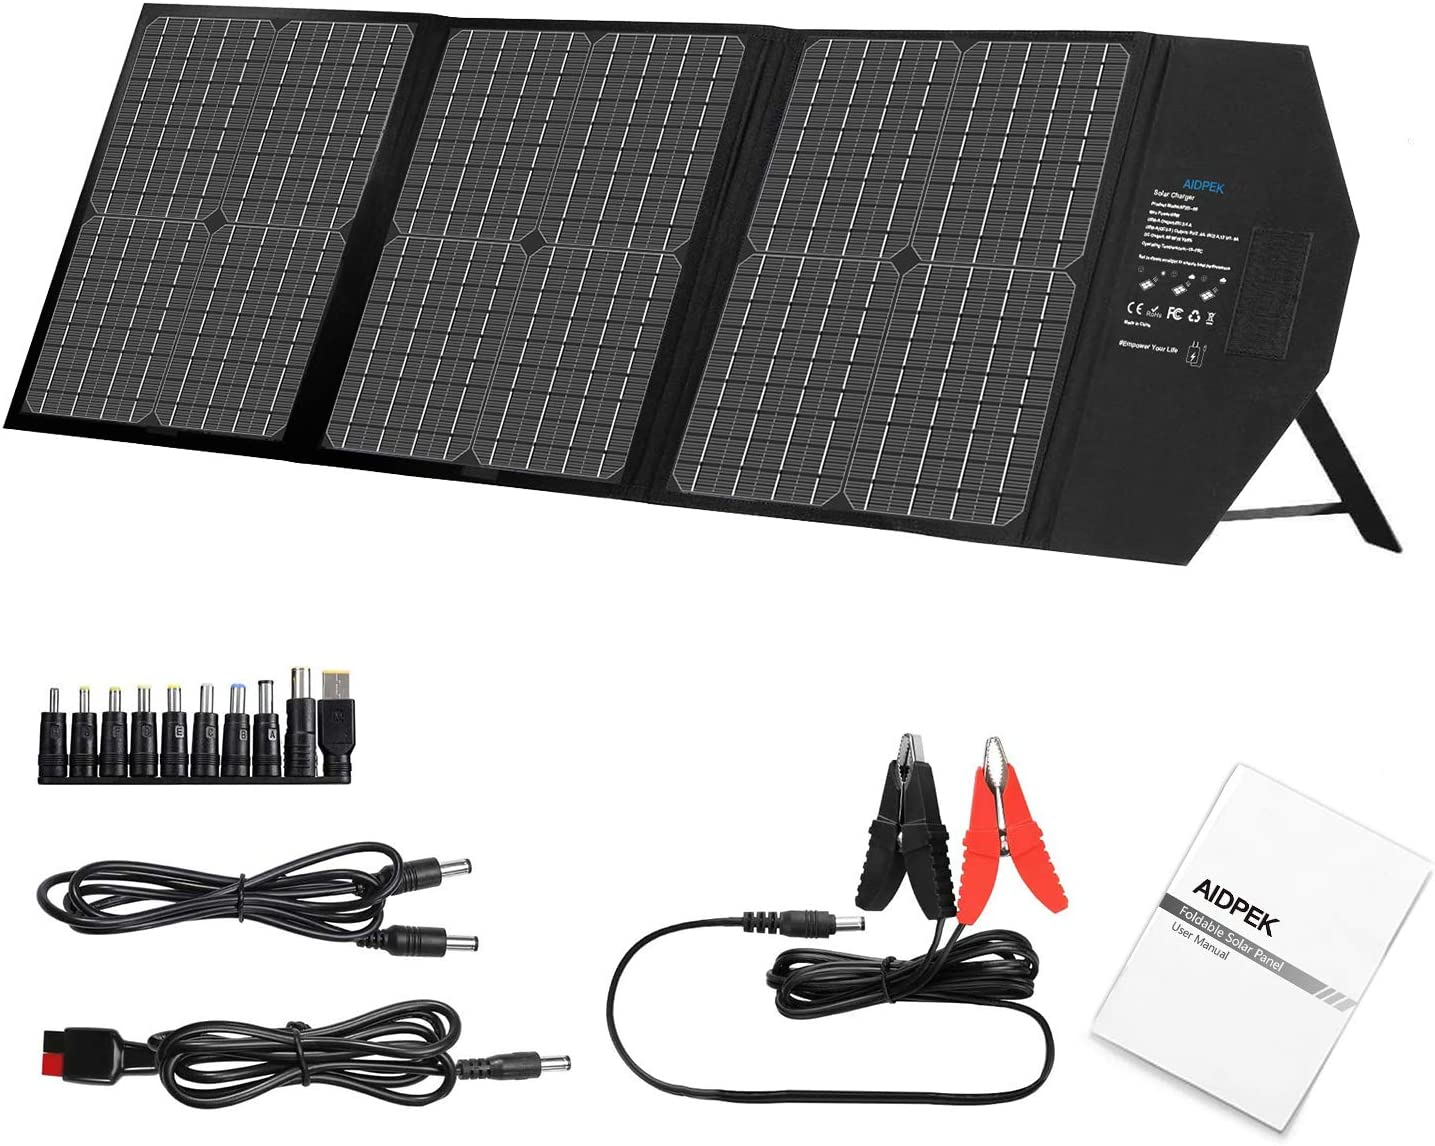 AIDPEK 60W Foldable Solar National uniform free shipping online shopping Panel Ch Kickstand with Portable